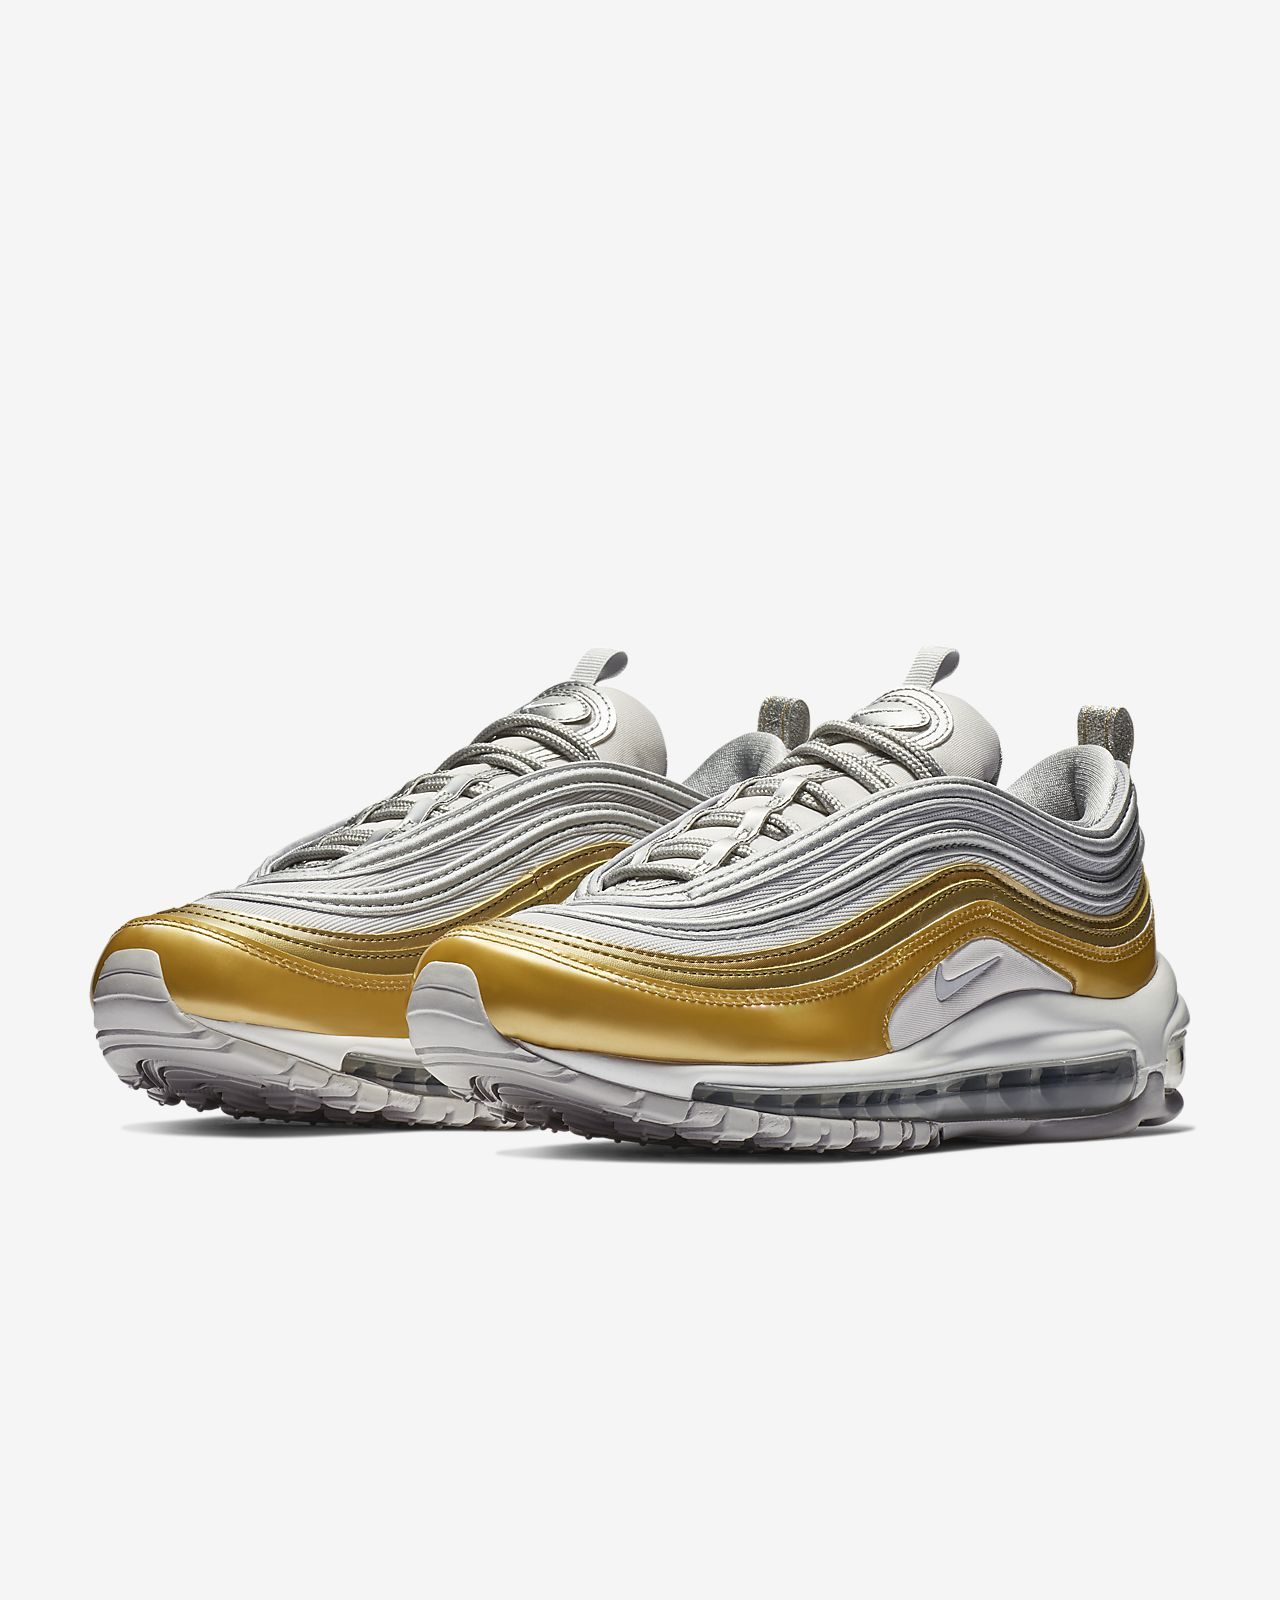 5a565209635 Nike Air Max 97 SE Metallic Women s Shoe. Nike.com BG